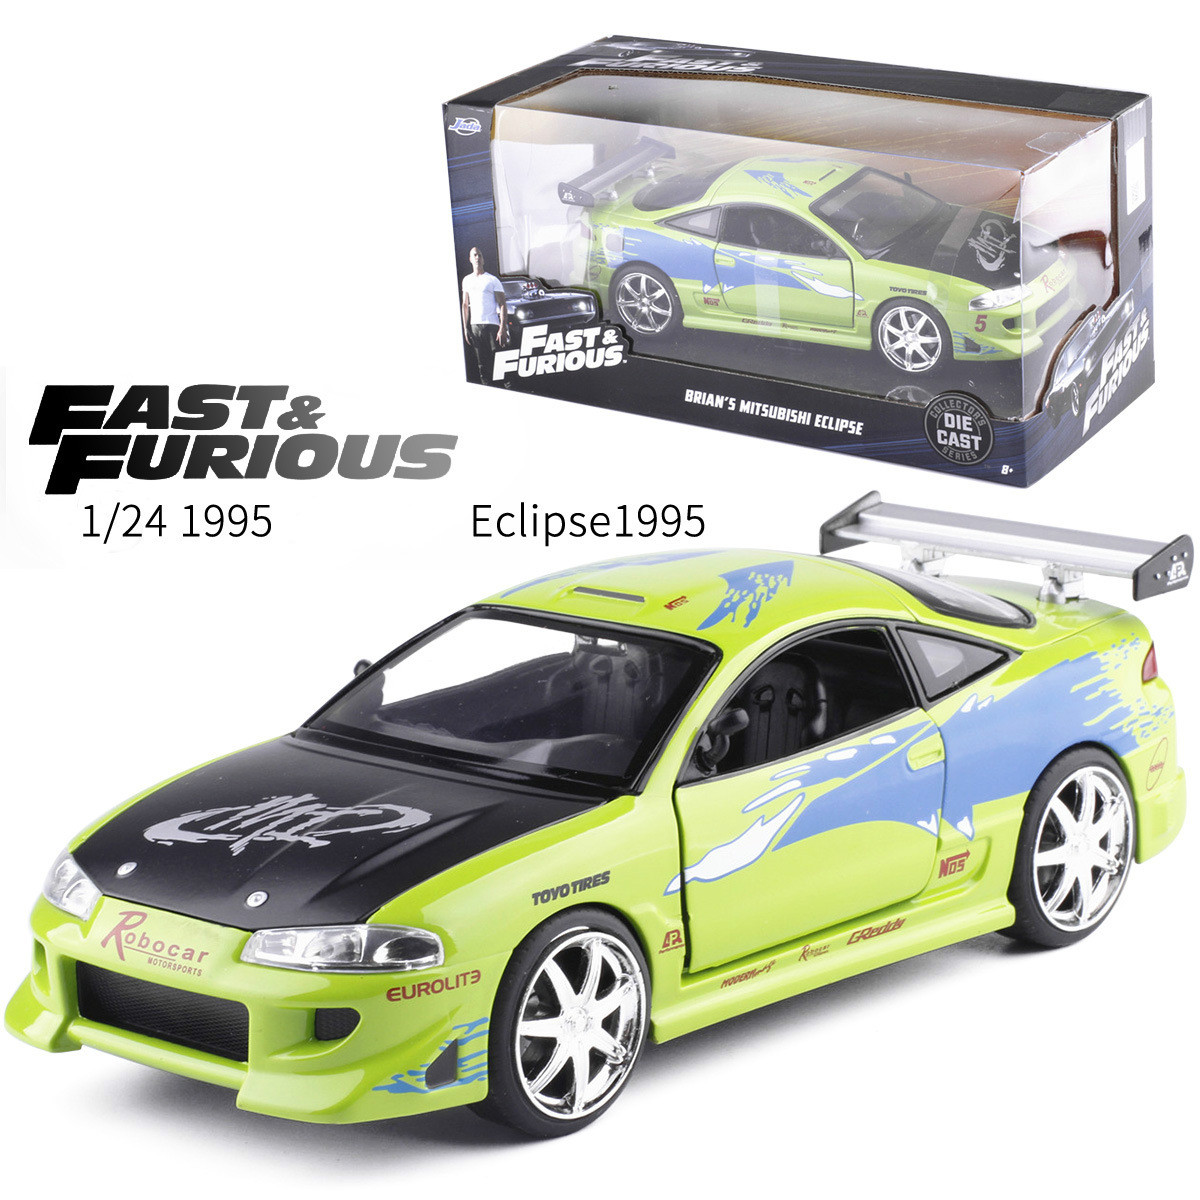 1:24 Jada Classical Fast And Furious 1995 Mitsubishi Eclipse Diecast Model Car Toy For Kid Birthday Gifts Collection Box-packed